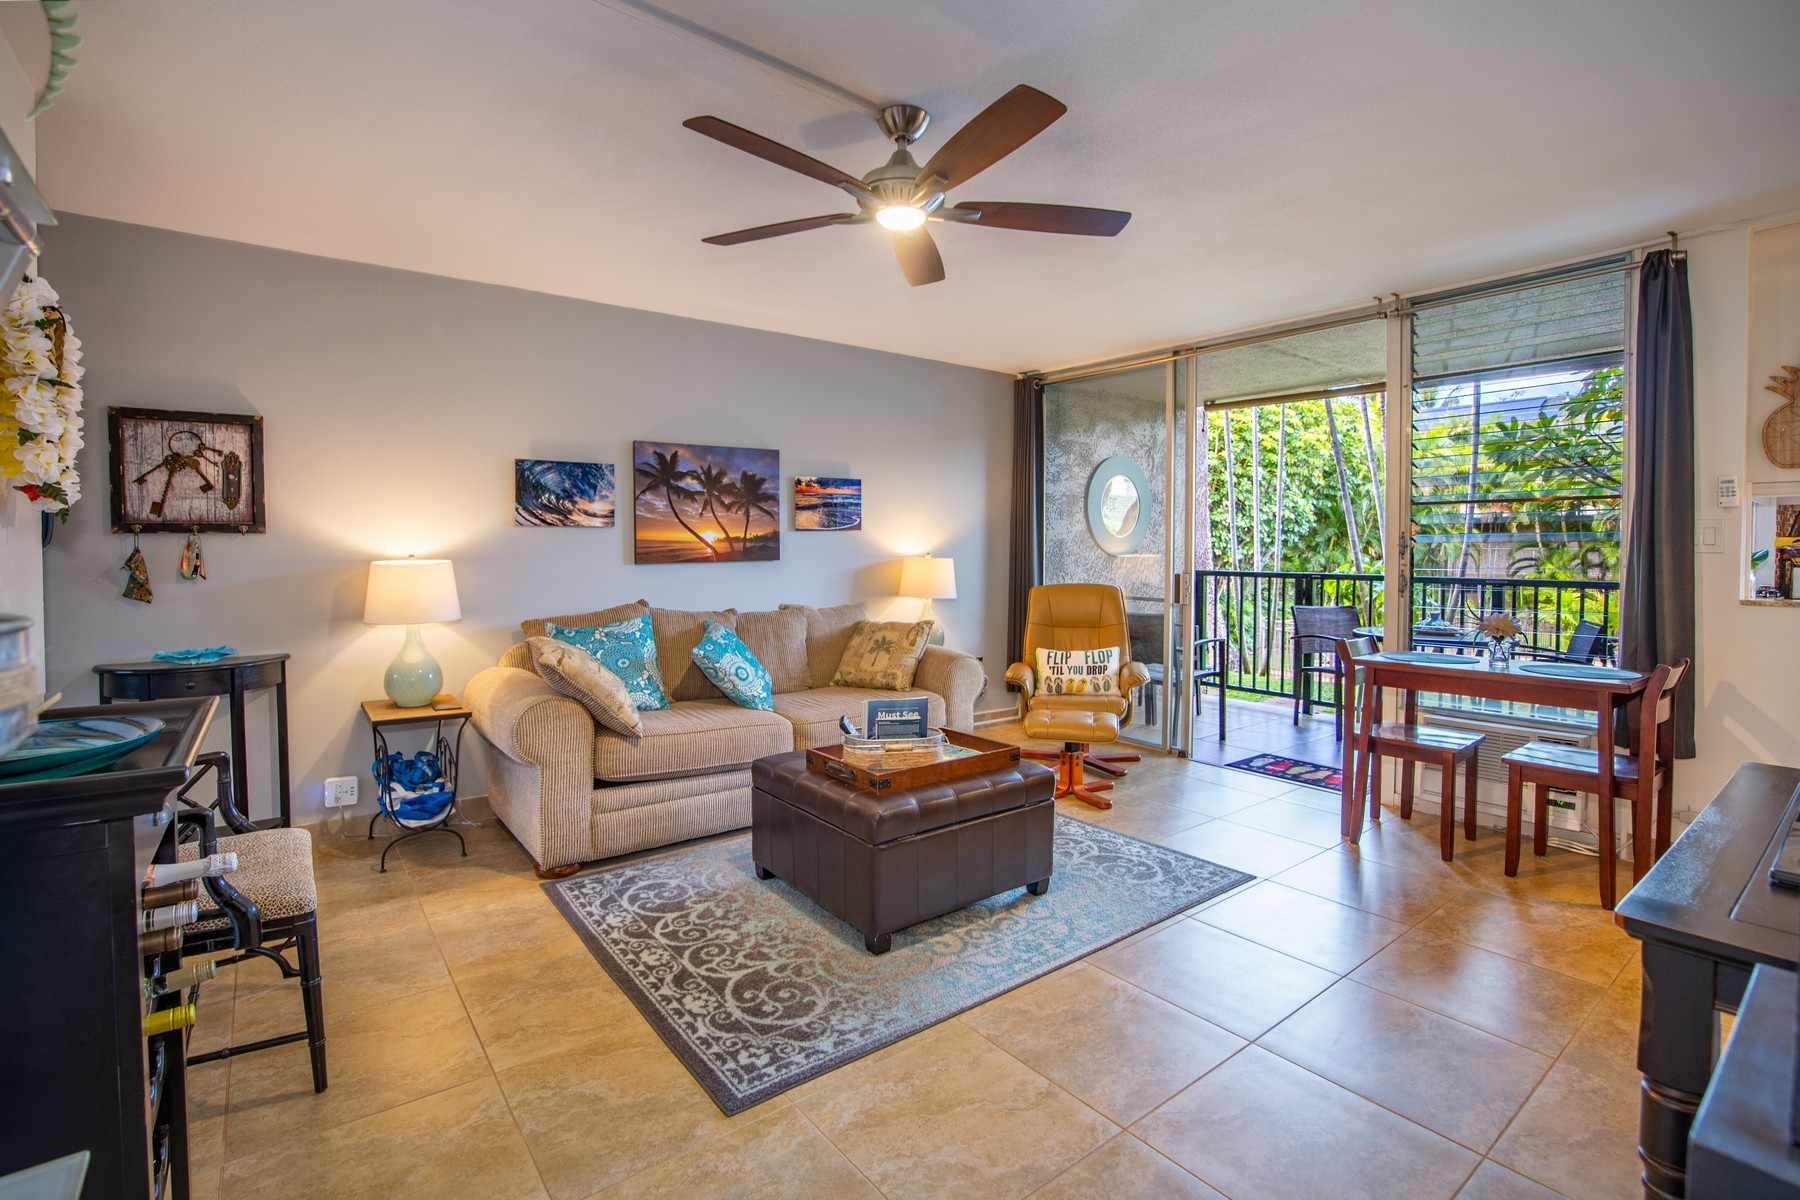 Single Family Homes for Sale at Affordable Luxury in South Maui 35 Walaka St, Kalama Terrace P-106 Kihei, Hawaii 96753 United States